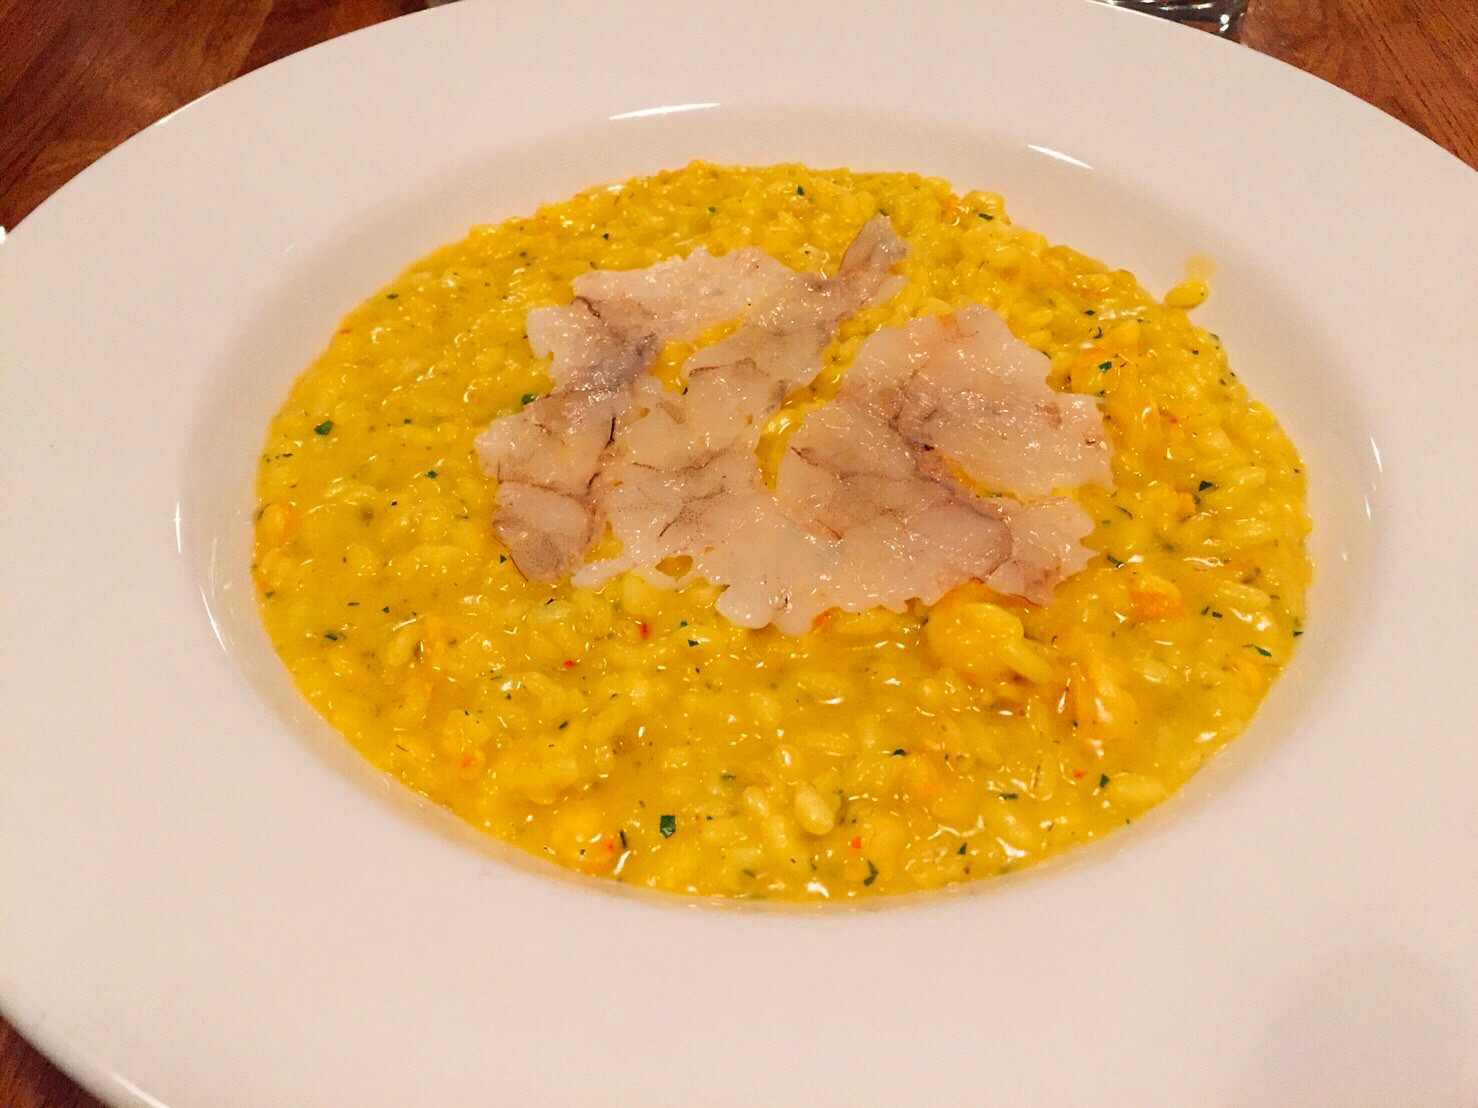 King prawns and saffron risotto